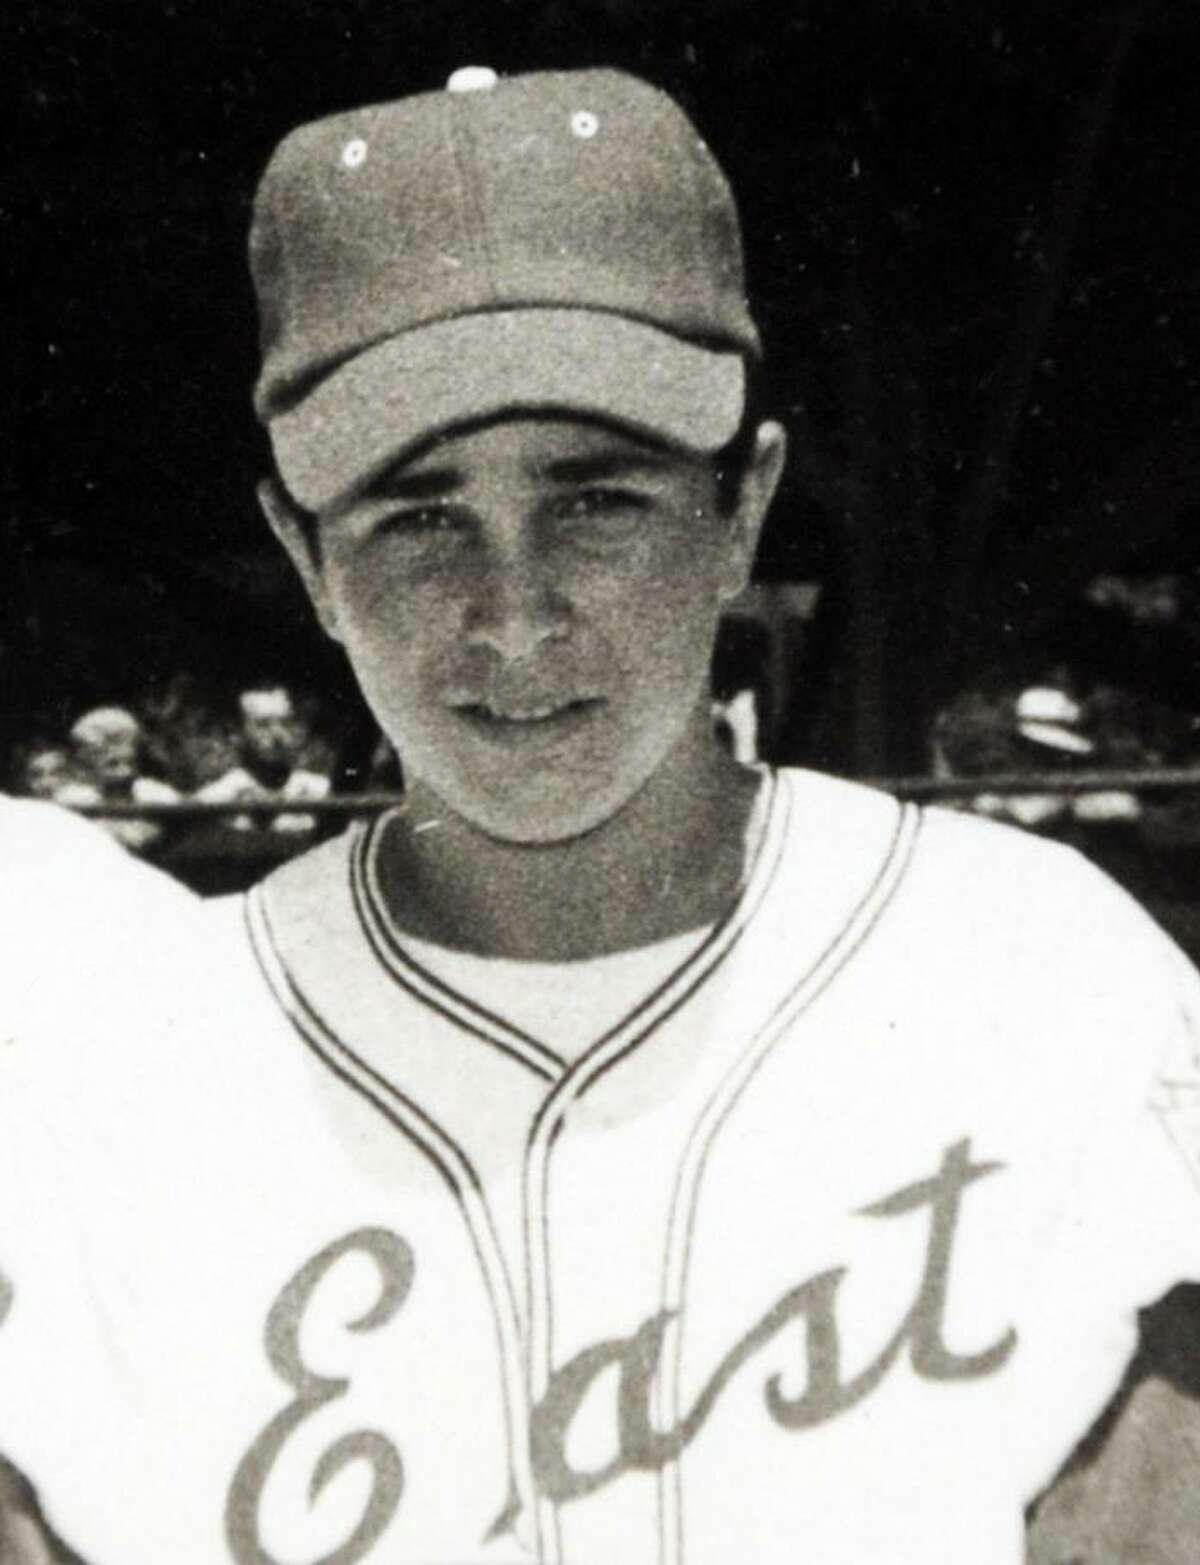 Paul Miller was a member of the Bridgeport North End Little League team that played in the Little League World Series in 1957.